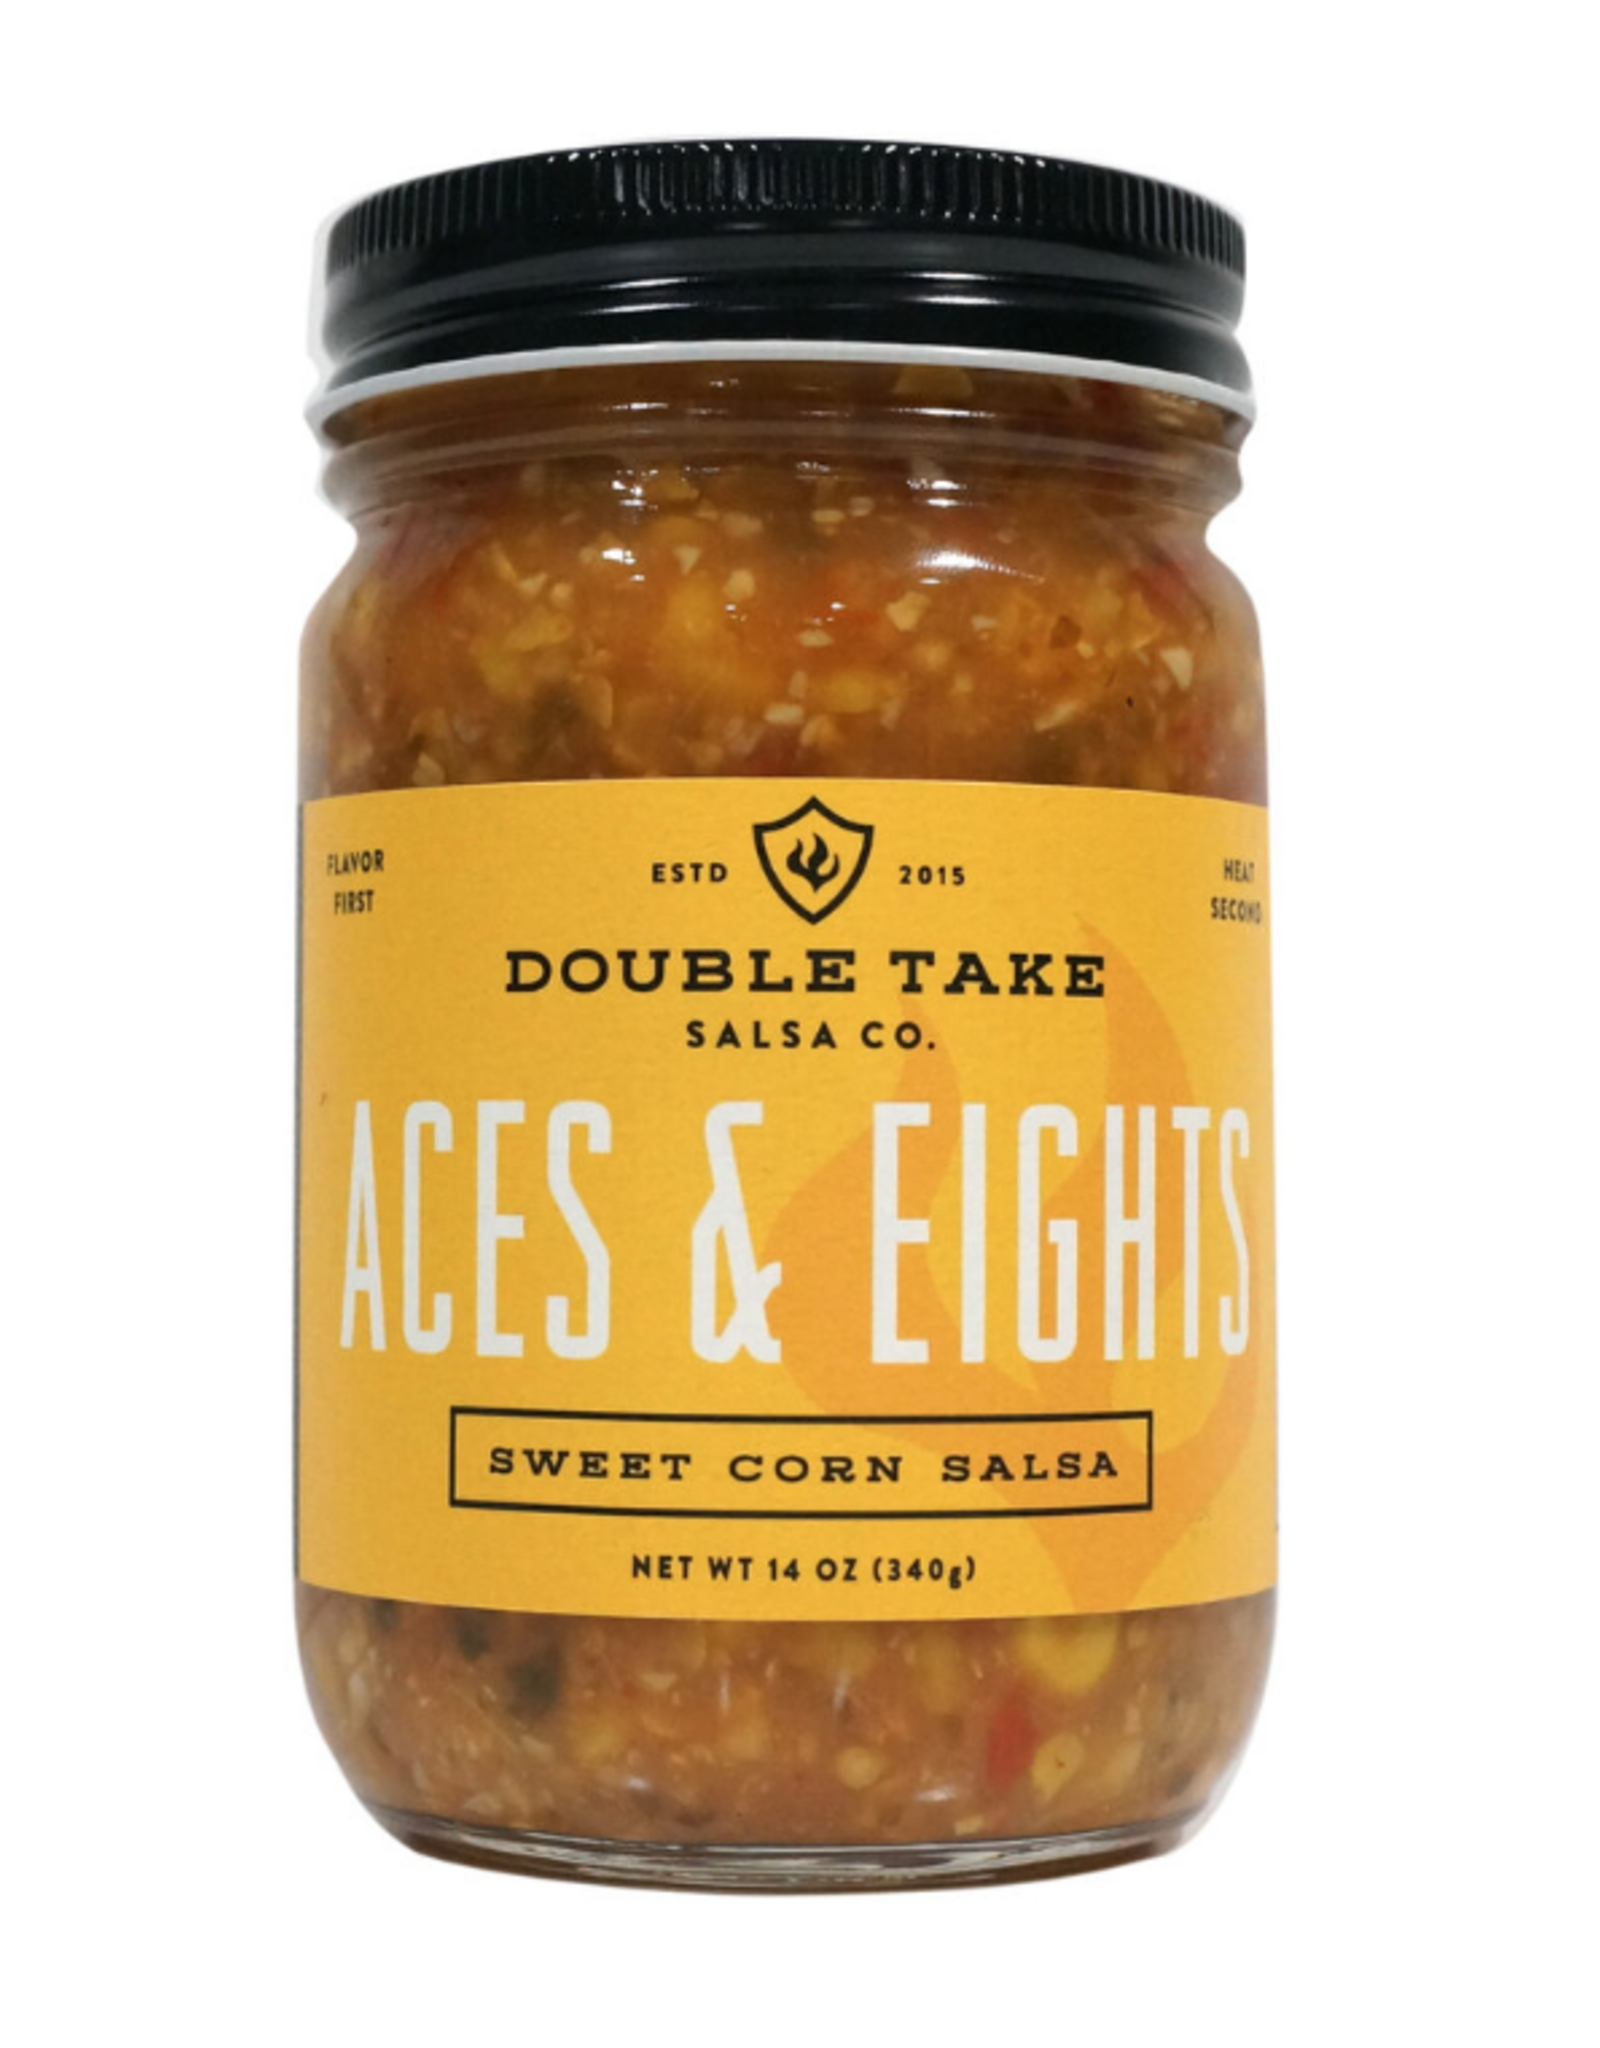 Double Take Salsa Aces & Eights Sweet Corn Salsa